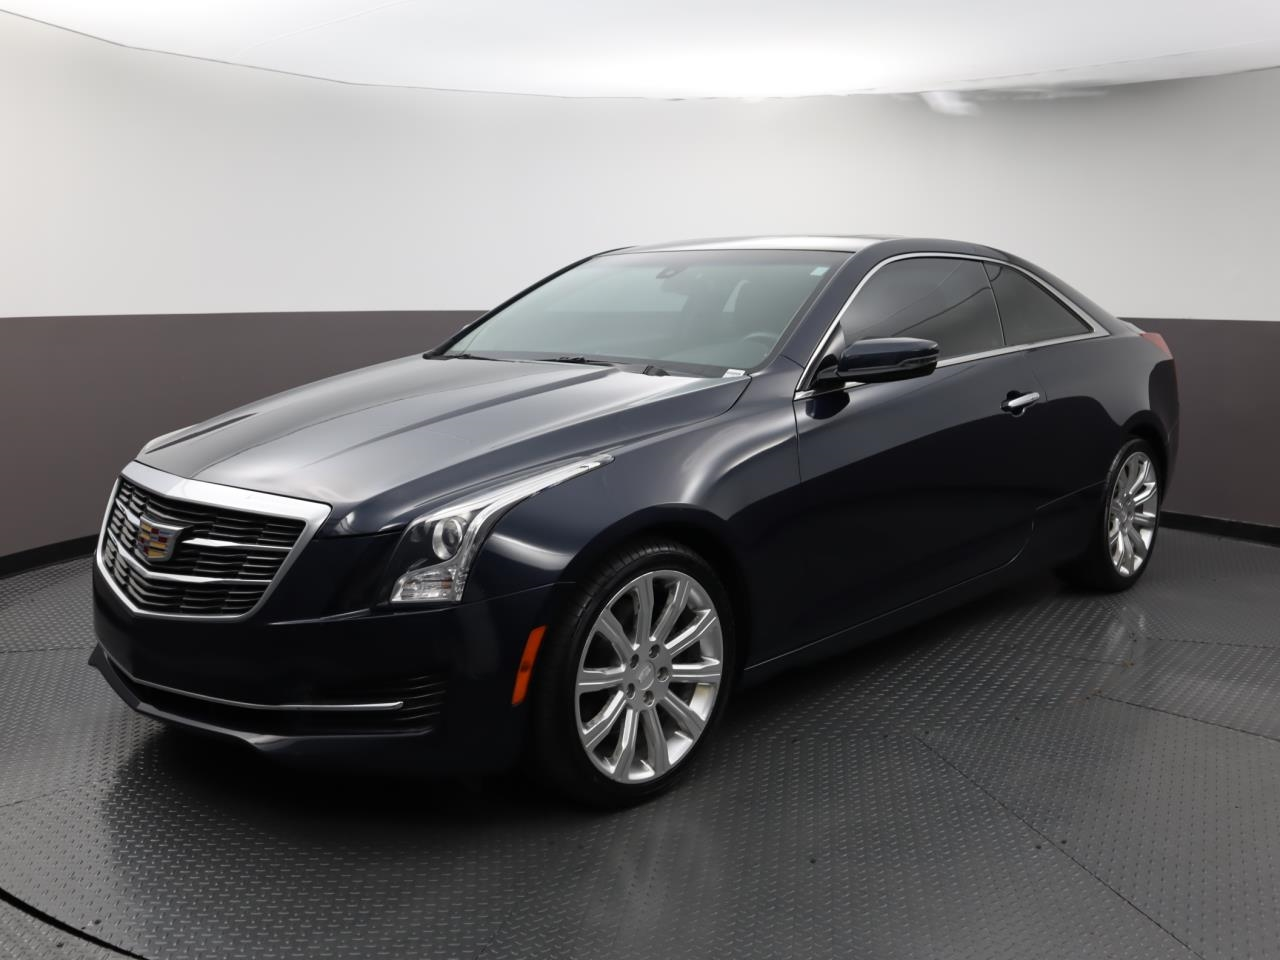 Used CADILLAC ATS 2016 WEST PALM STANDARD RWD